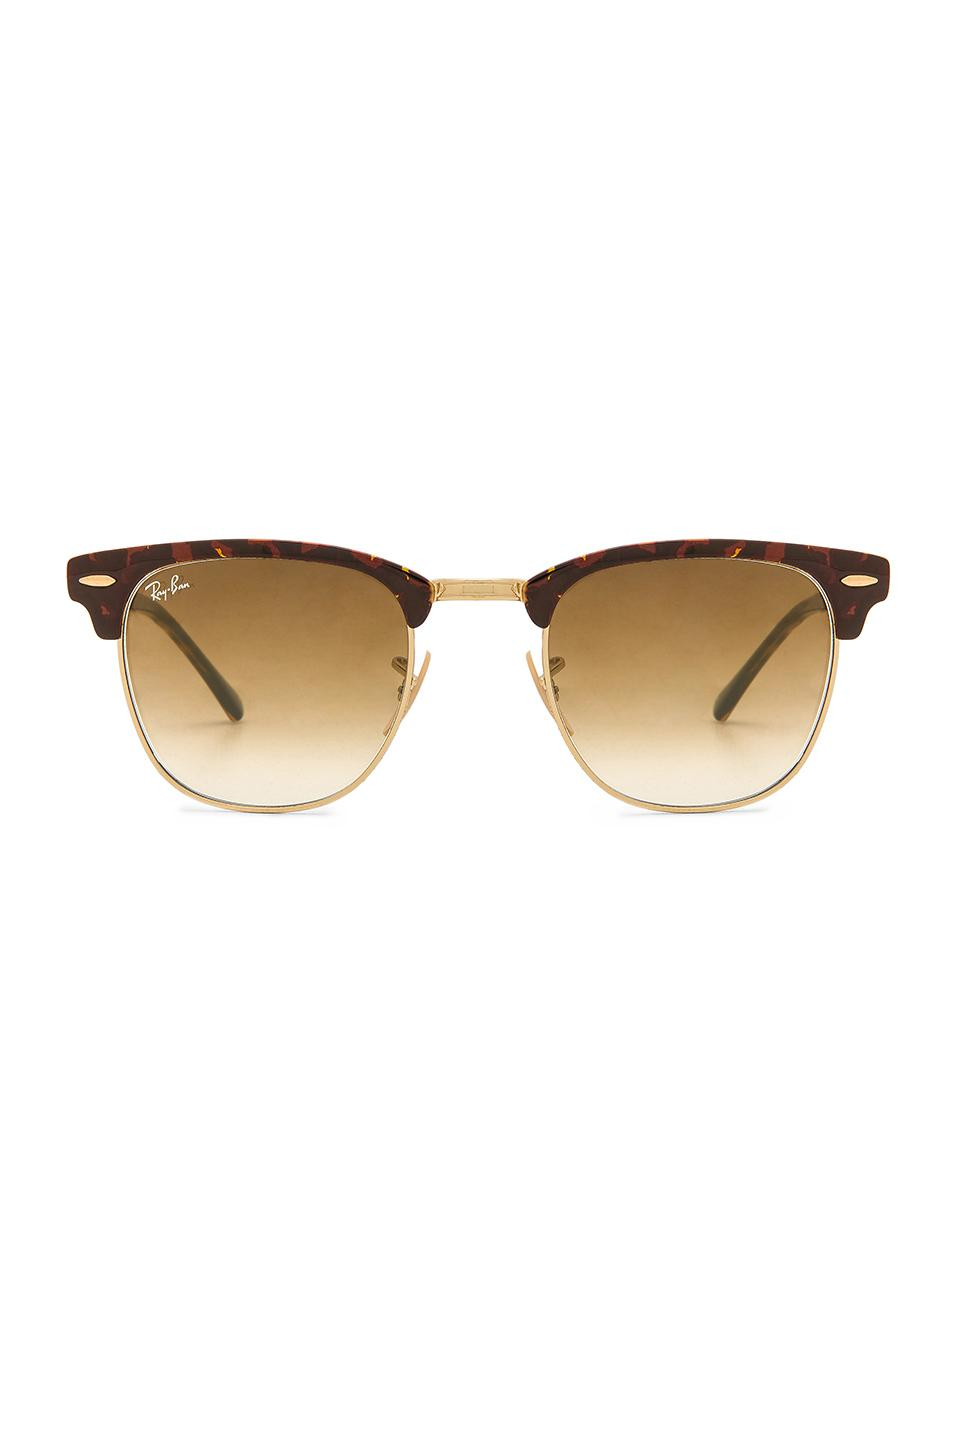 Ray Ban Metal Clubmaster In Metallic Gold